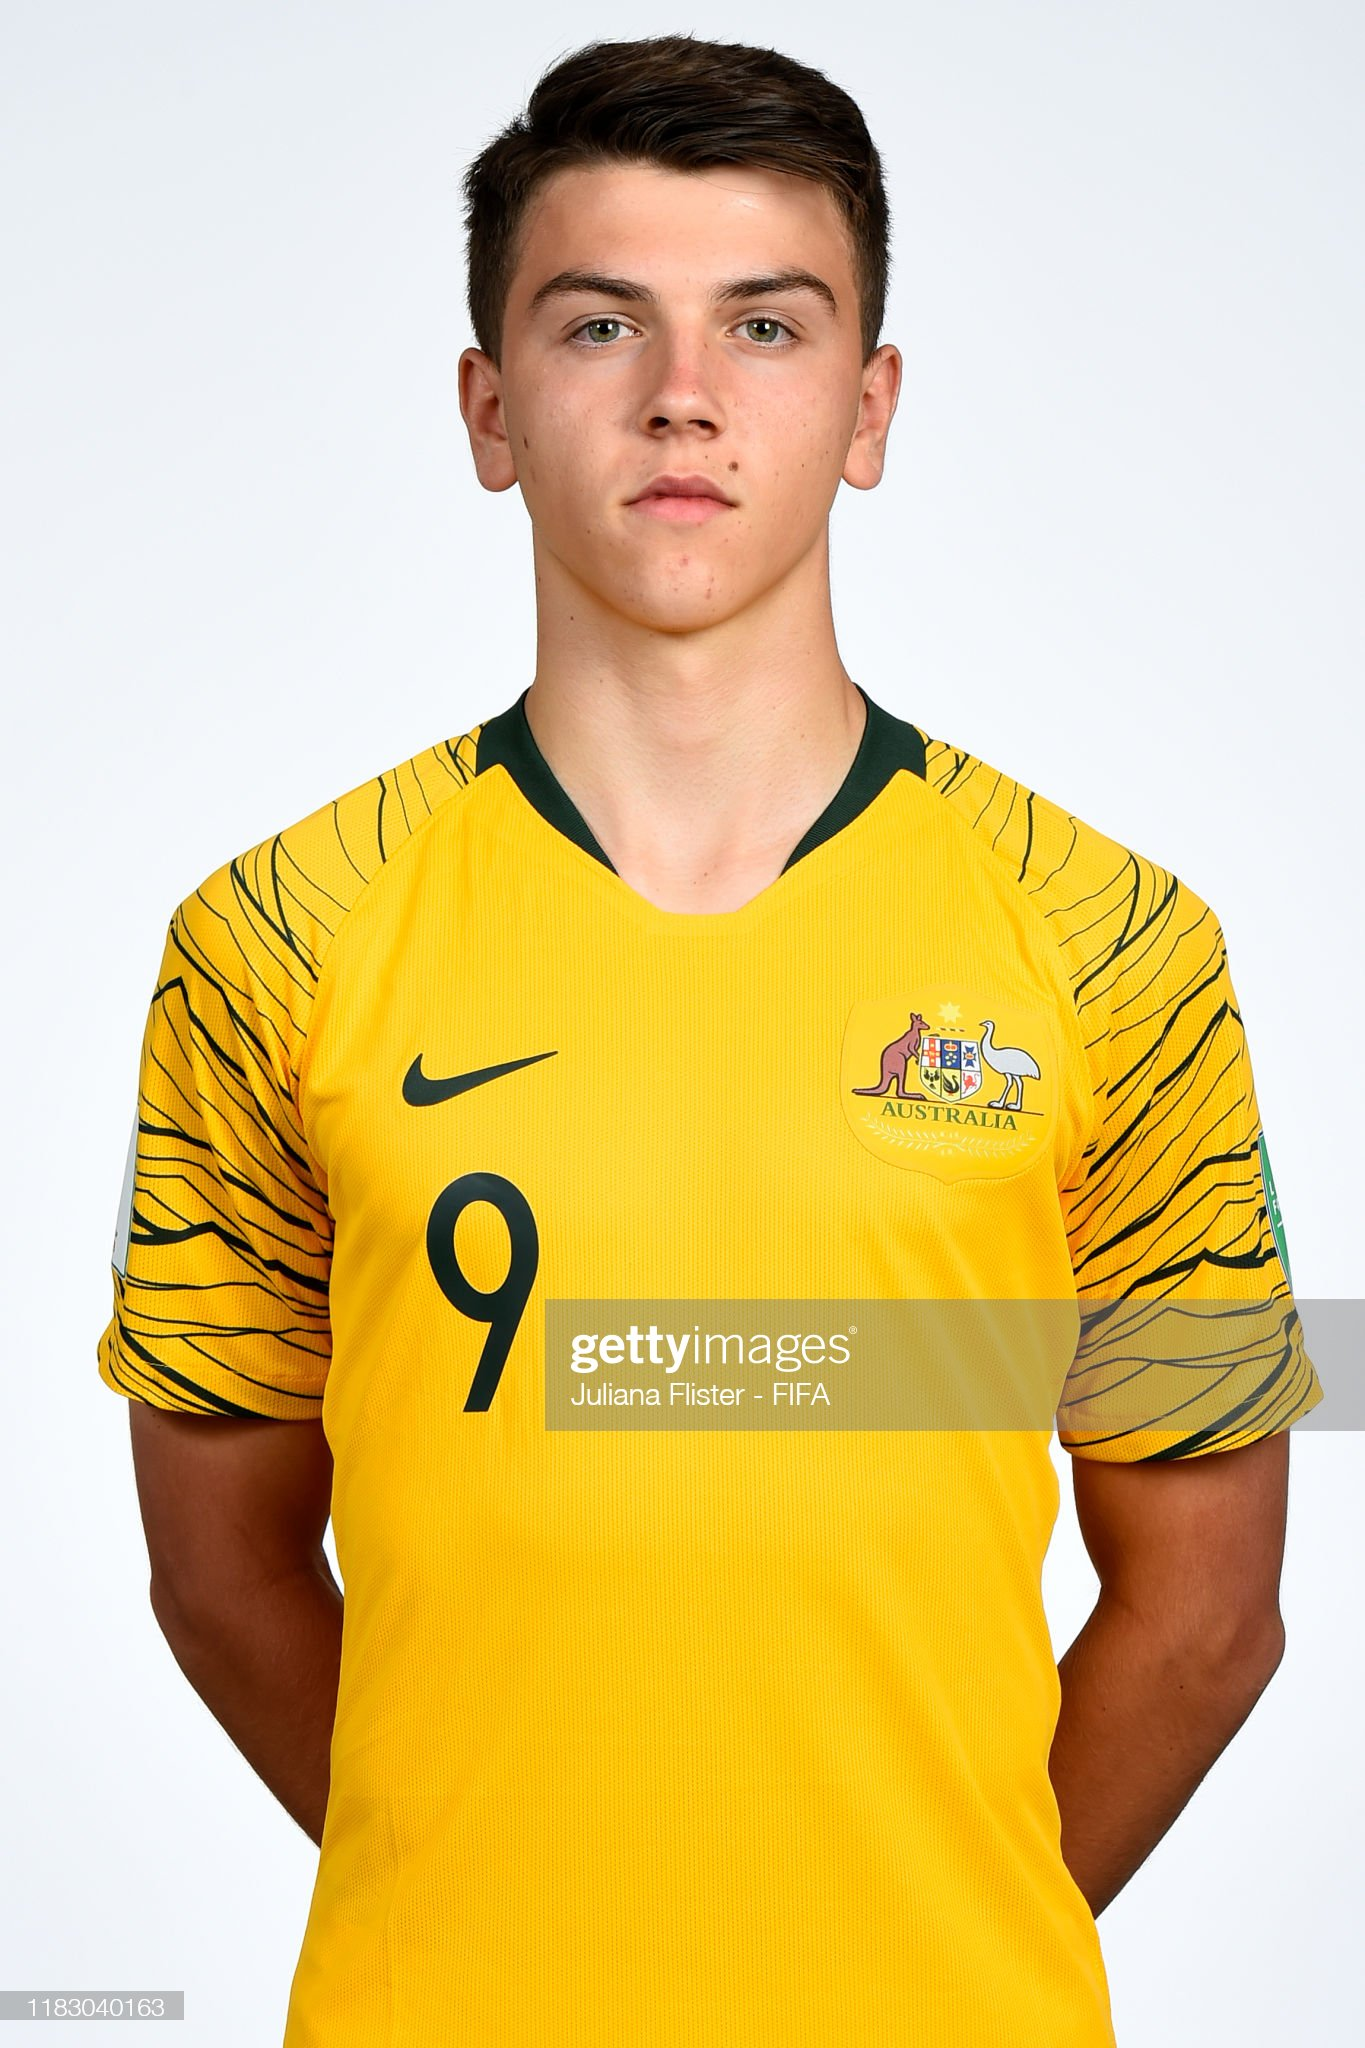 https://media.gettyimages.com/photos/noah-botic-poses-during-the-u17-australia-team-presentation-on-23-picture-id1183040163?s=2048x2048